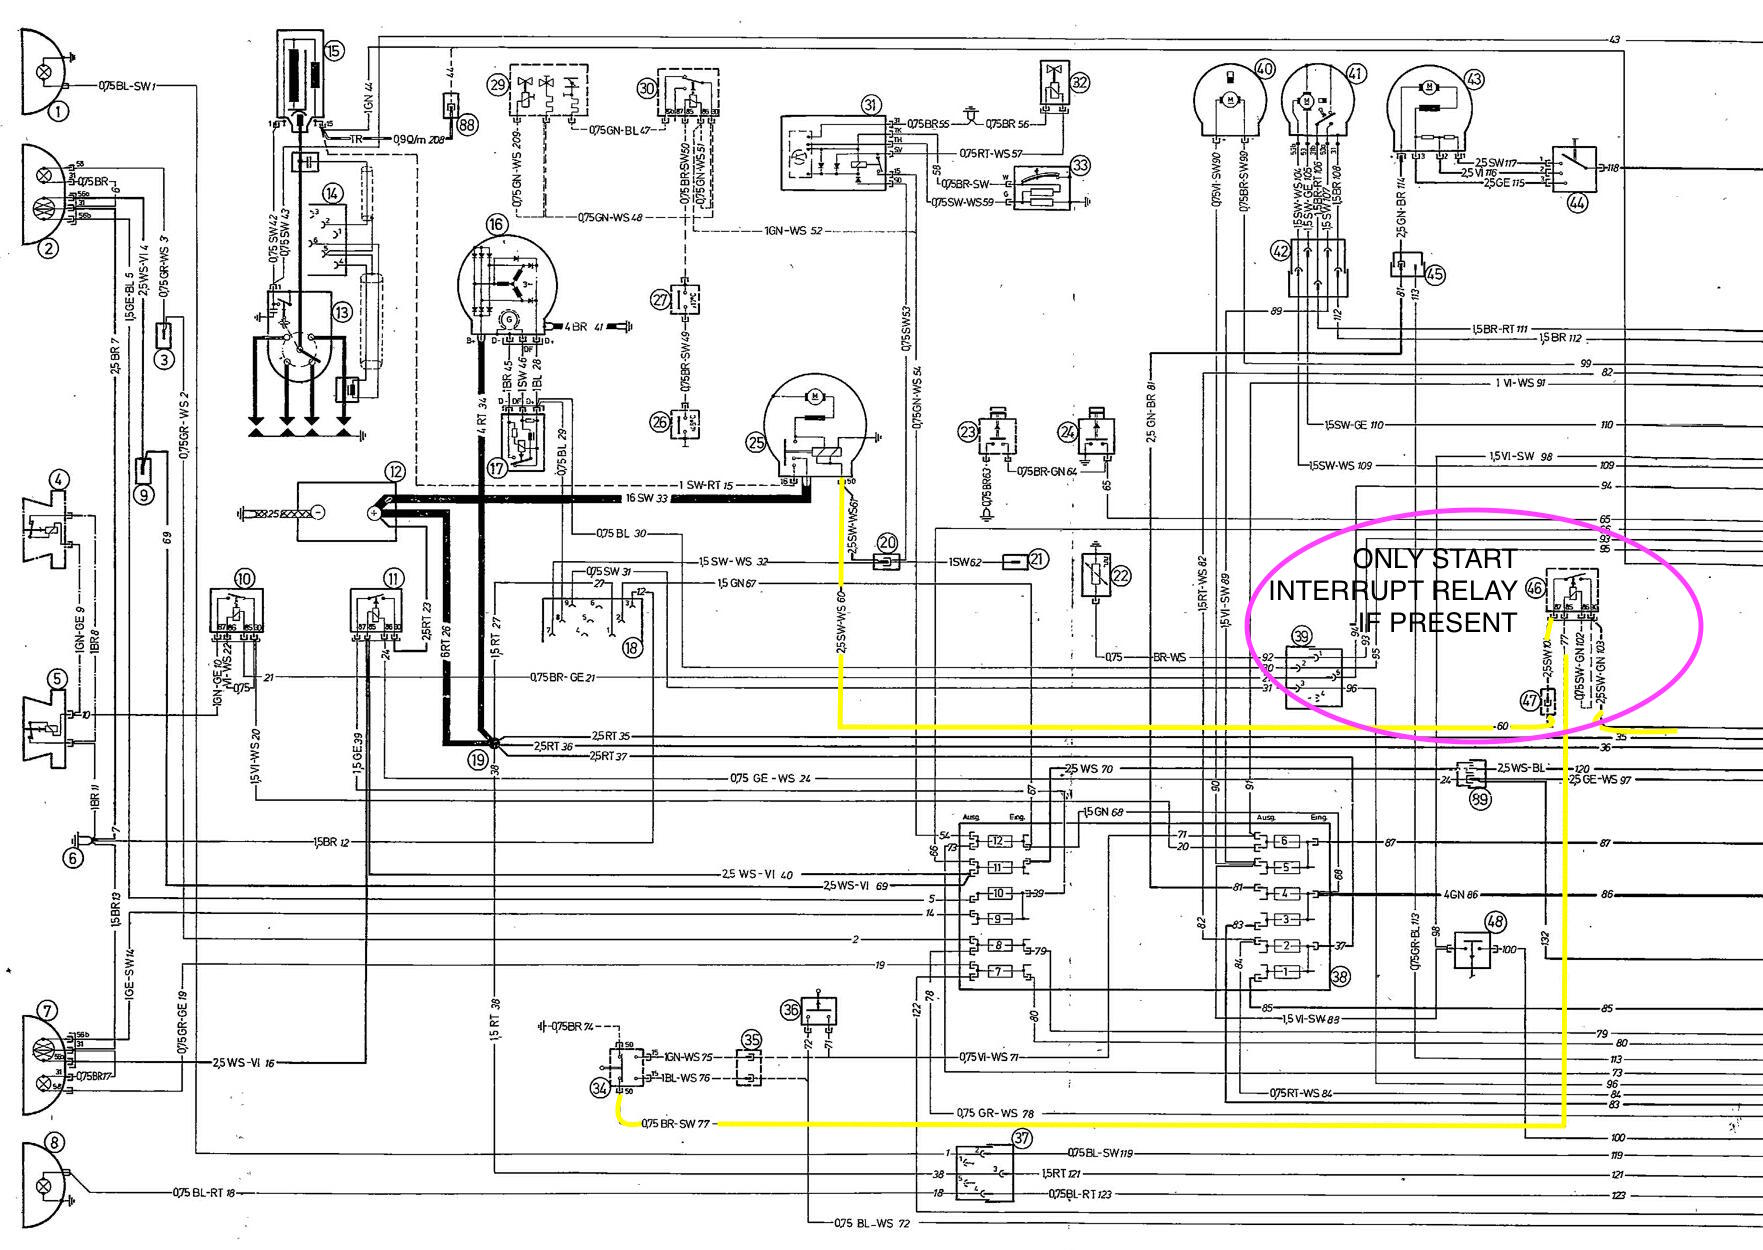 hight resolution of is quot the starter relay quot really a starter relay bmw 2002 1976 bmw 02 wiring diagram bmw 2002 tii wiring diagram